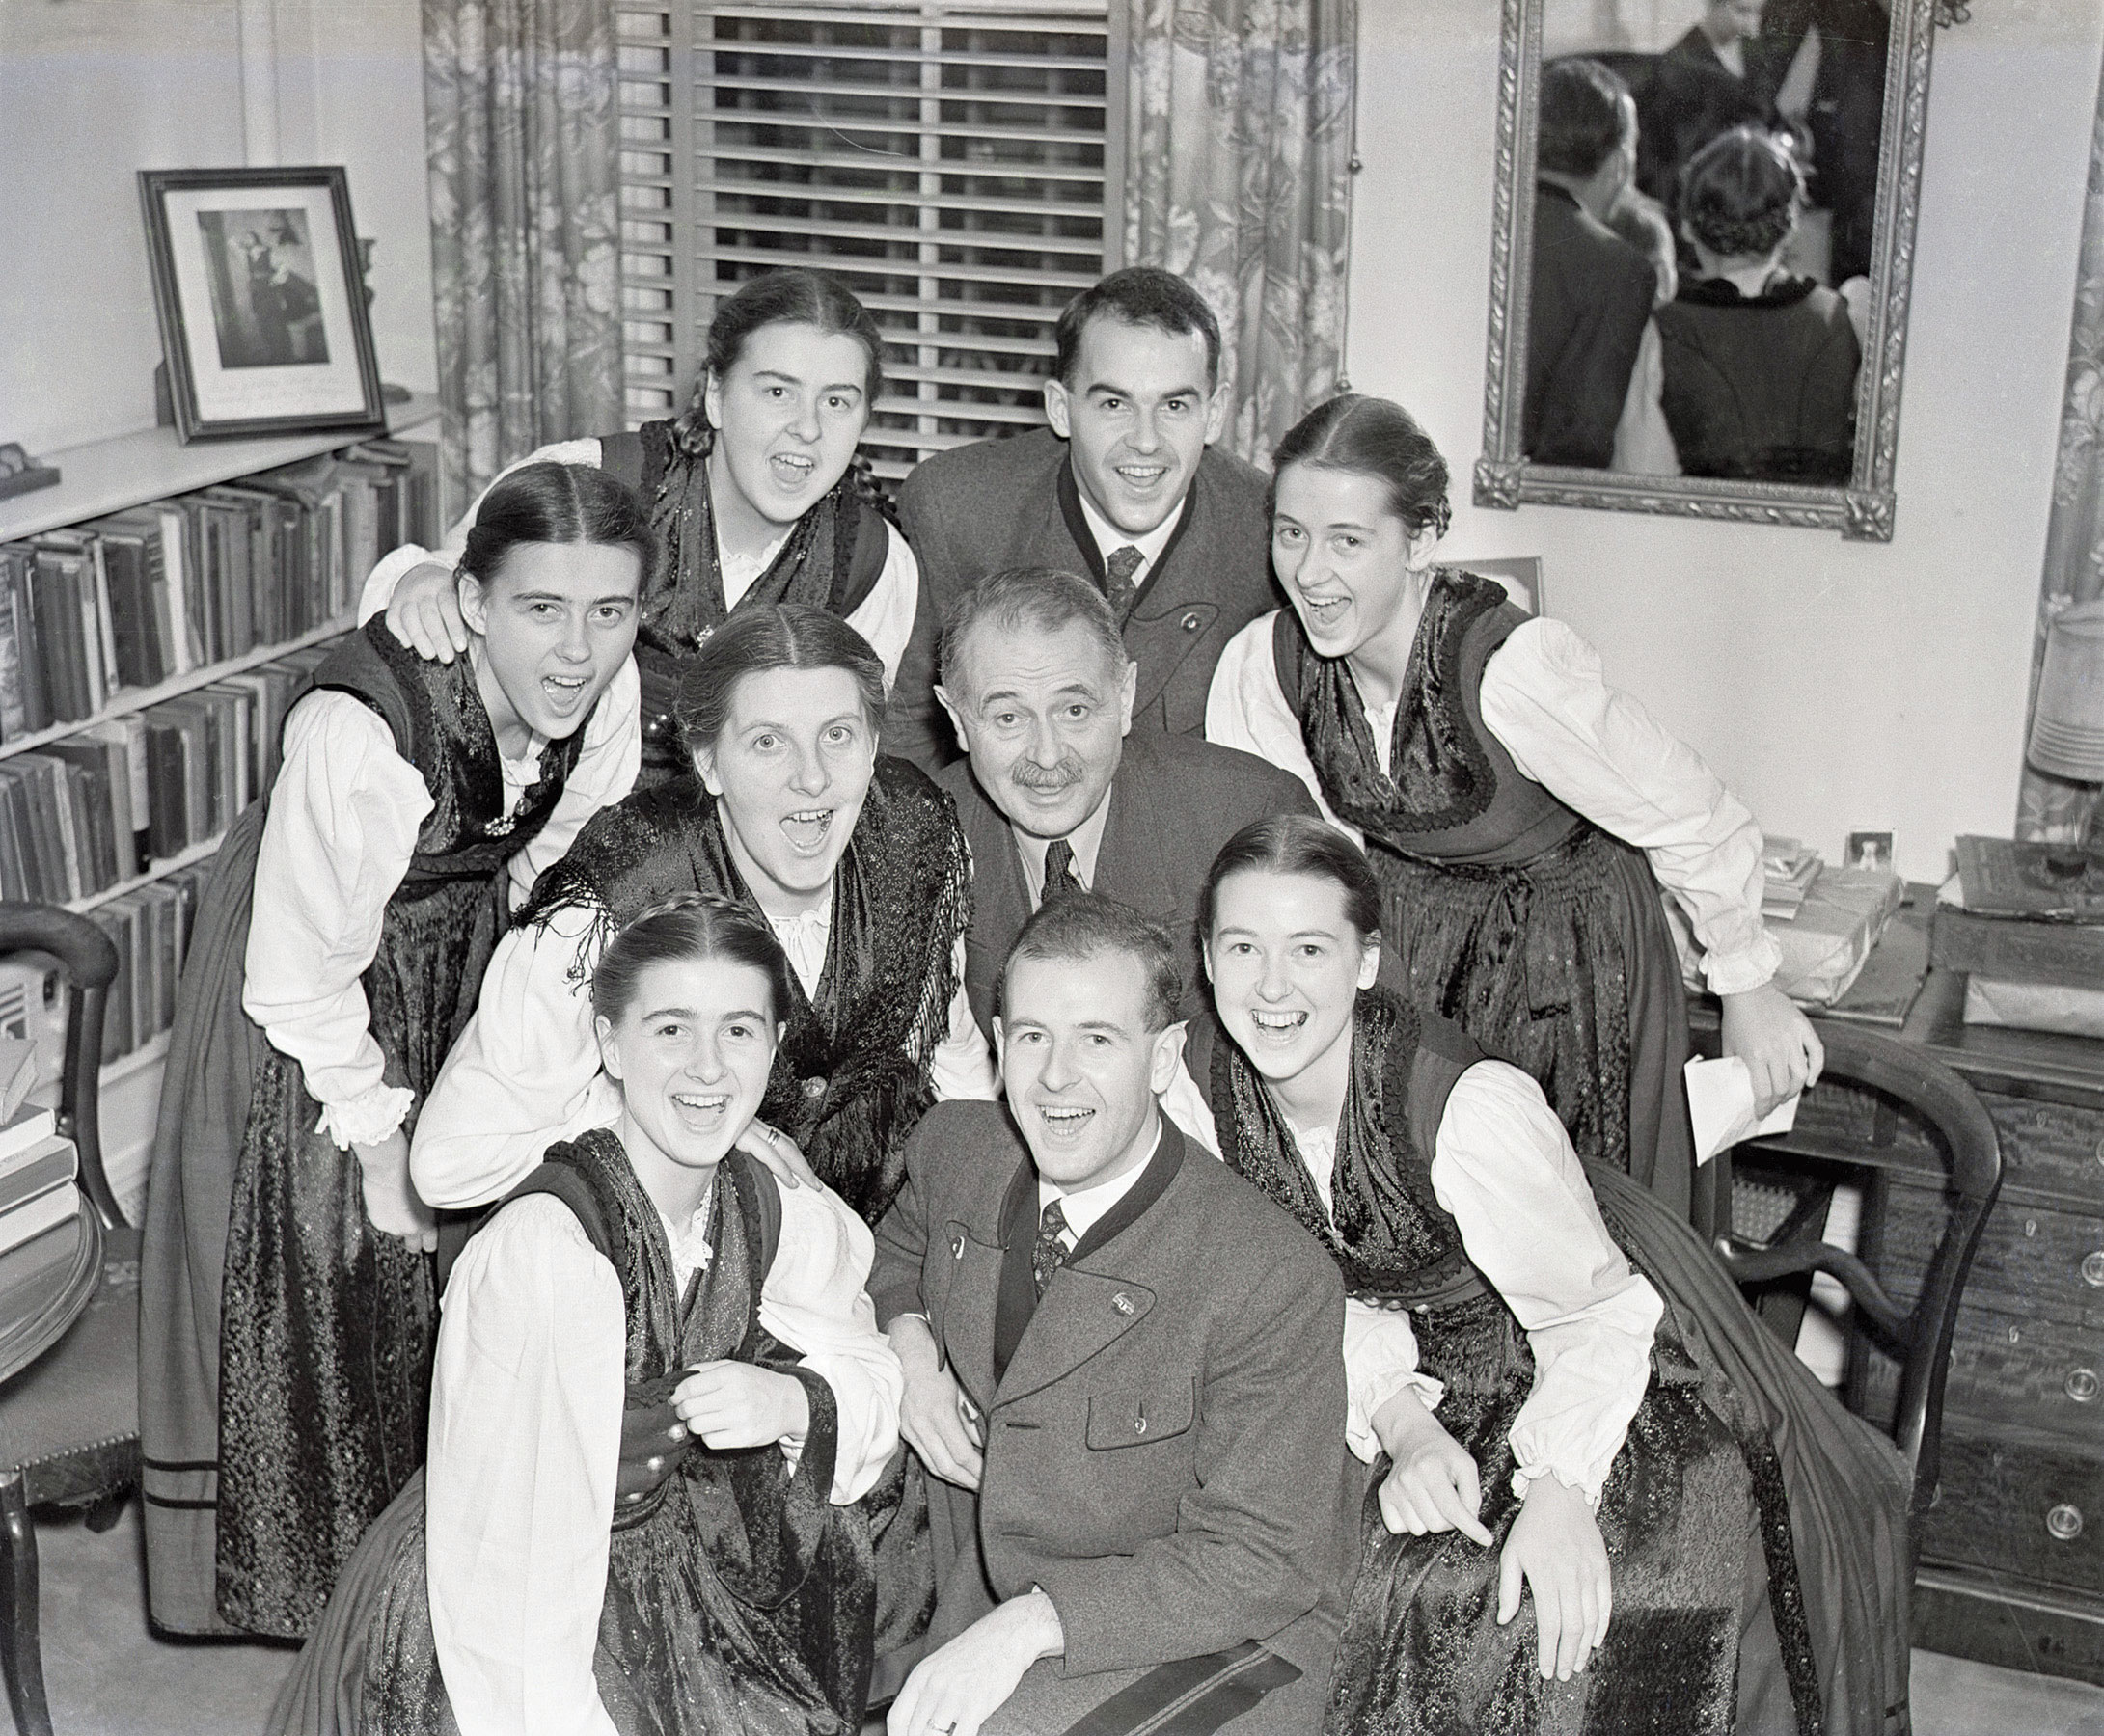 """The Von Trapp Family singers warm up before a performance in New York's Town Hall. The musical """"The Sound of Music"""" was based on their life in Austria. December 5, 1938."""